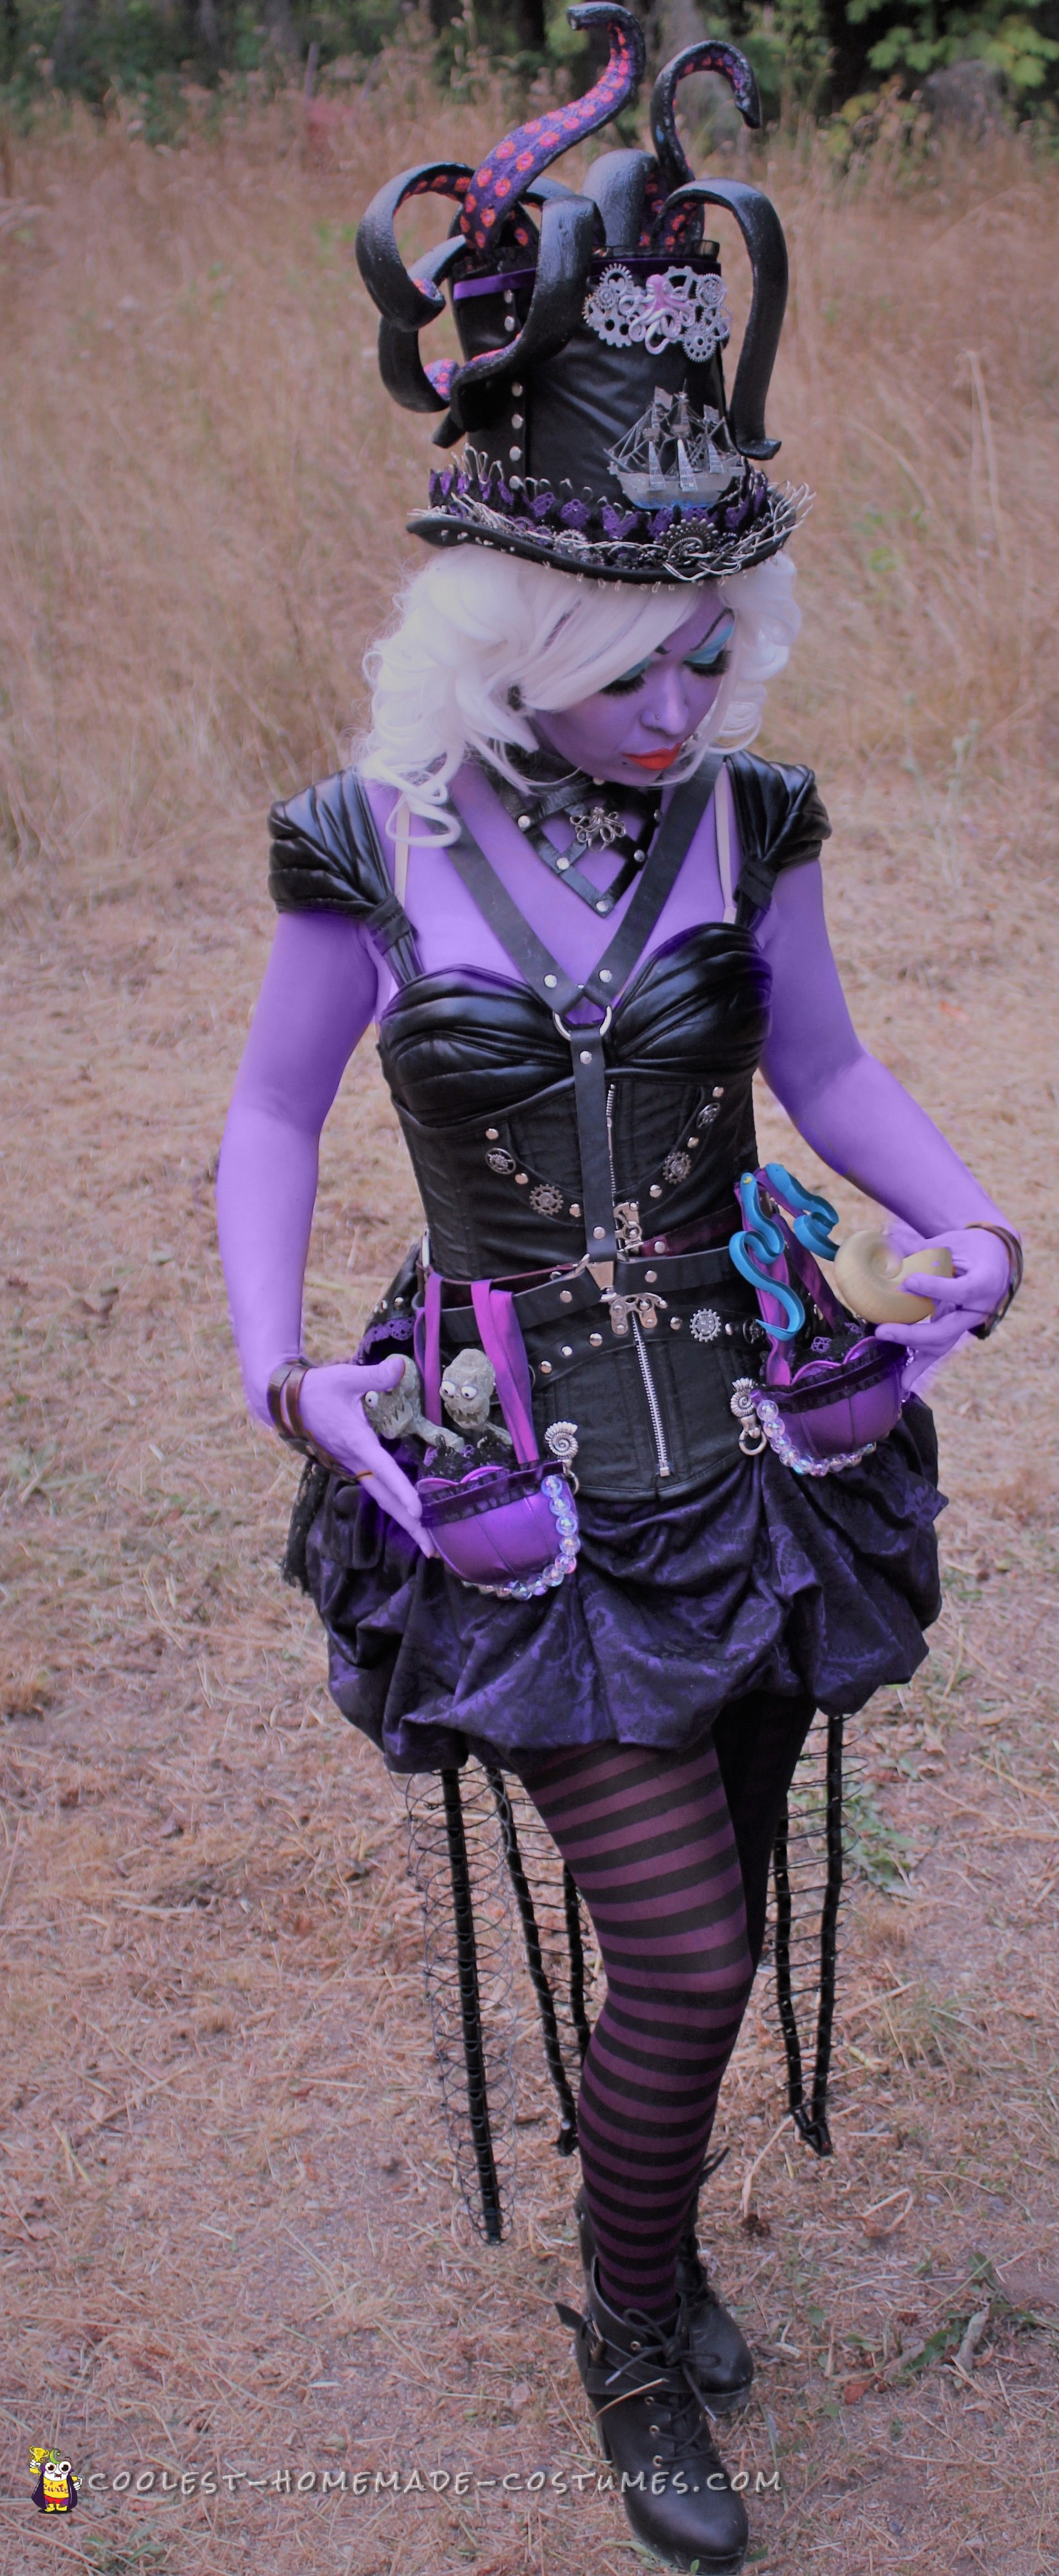 Awesome DIY Steampunk Ursula Costume is Making Waves